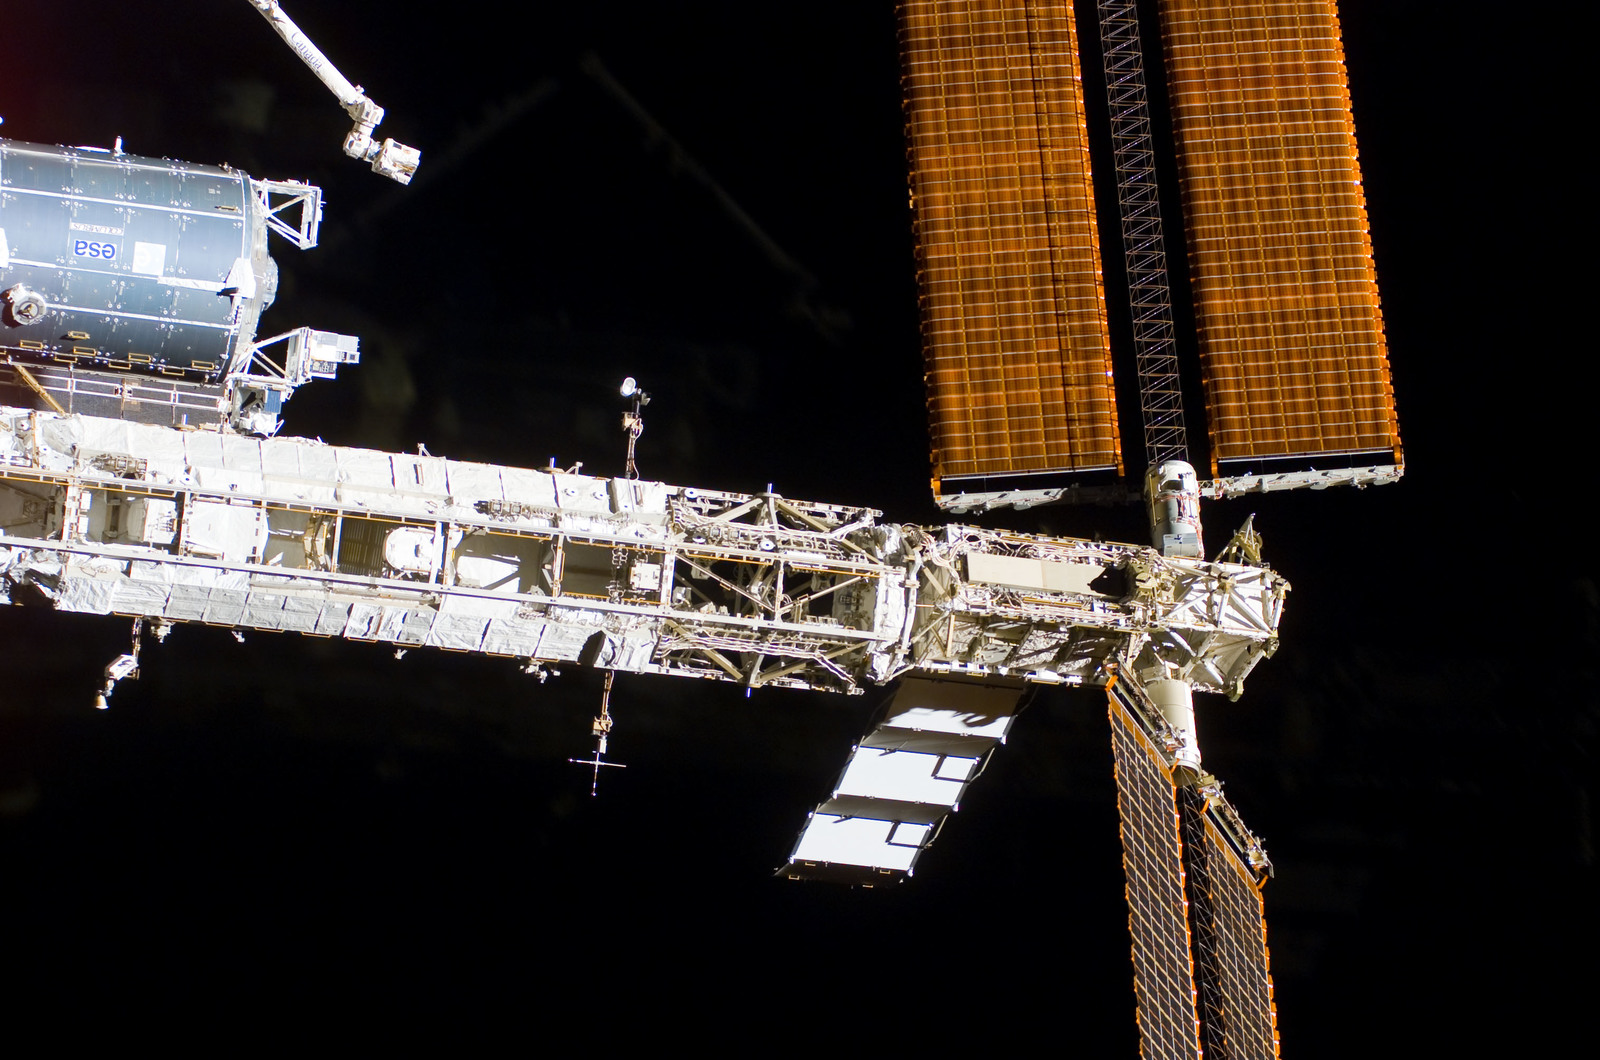 S122E009936 - STS-122 - Flyaround view of ISS after STS-122 Undocking